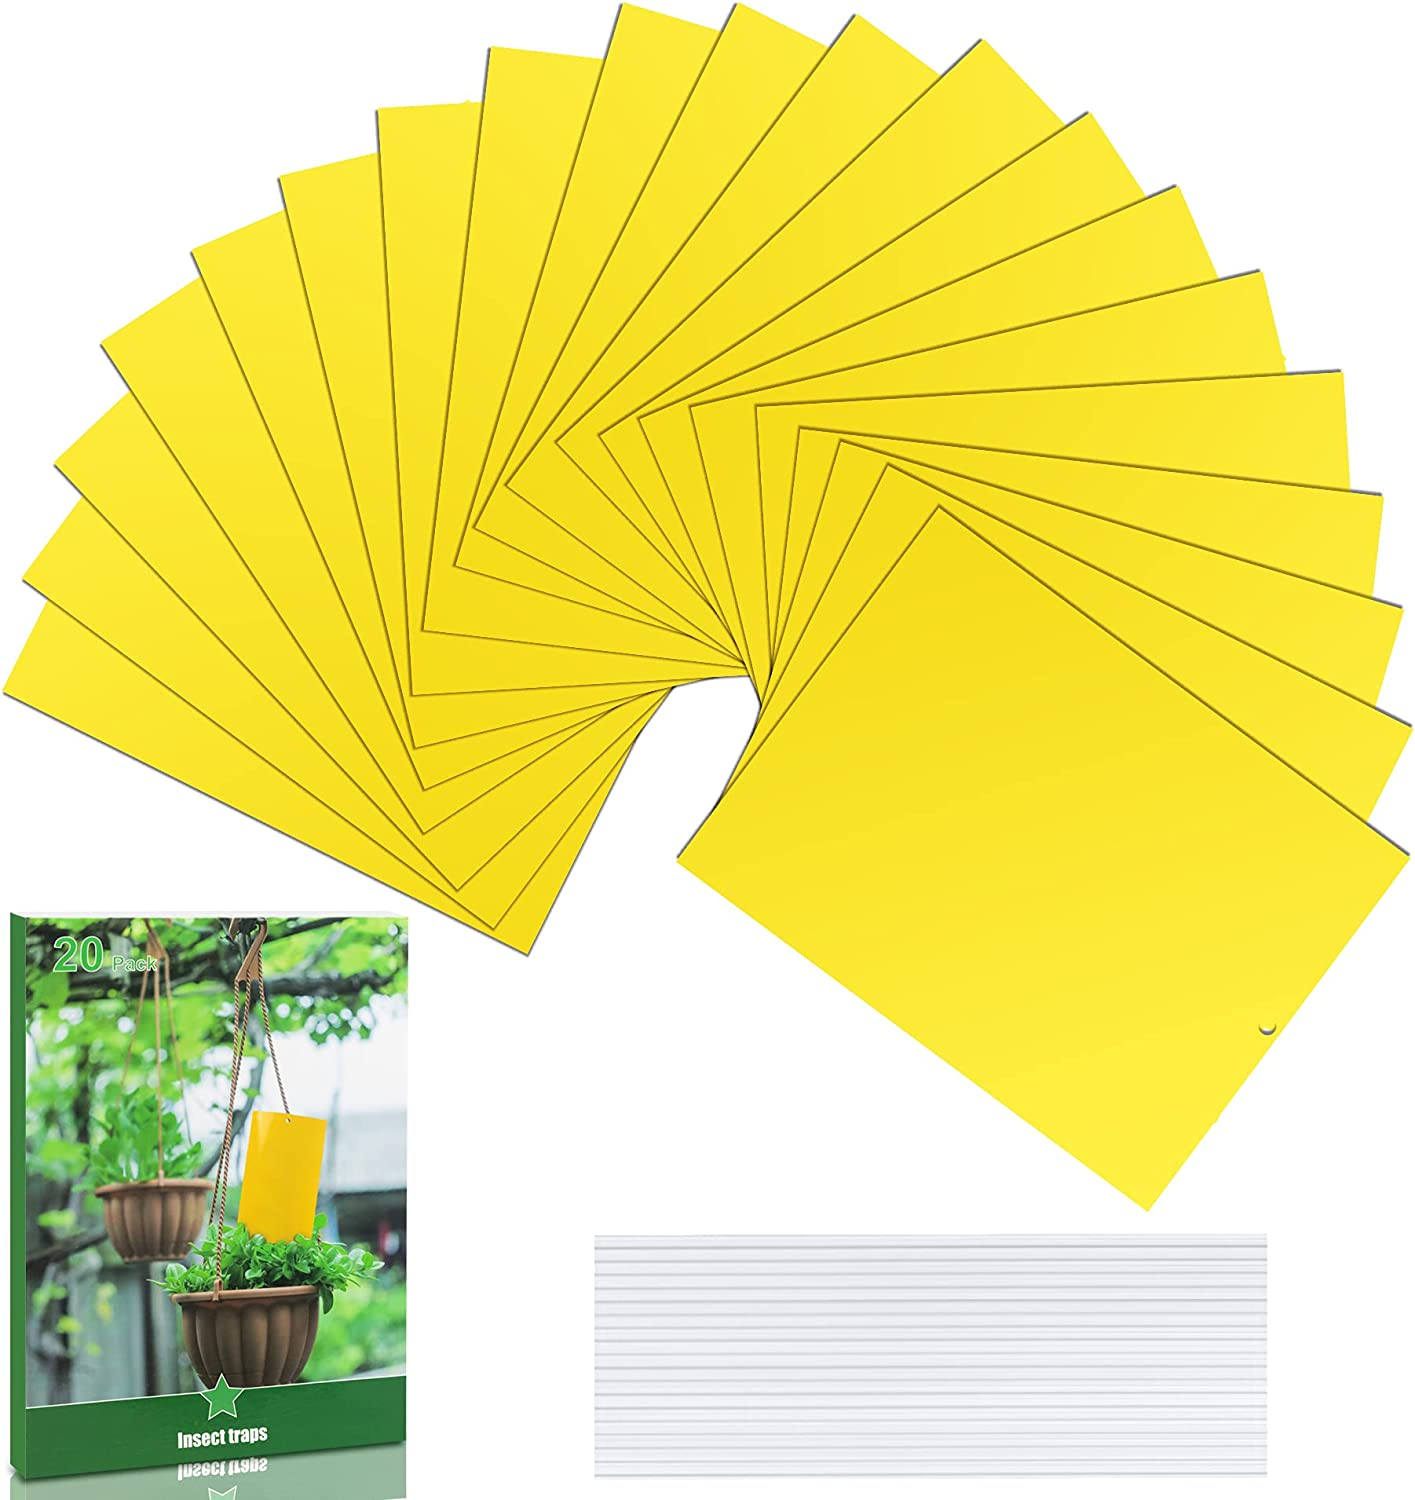 20 Pcs Yellow Sticky Traps,Dual-Sided Glue Flying Traps for Indoor/Outdoor Flying Plant Insect,Gnat Trap for Aphids,Fungus Gnats, White Flies, Leafminers, Thrips etc. 6x8 Inch